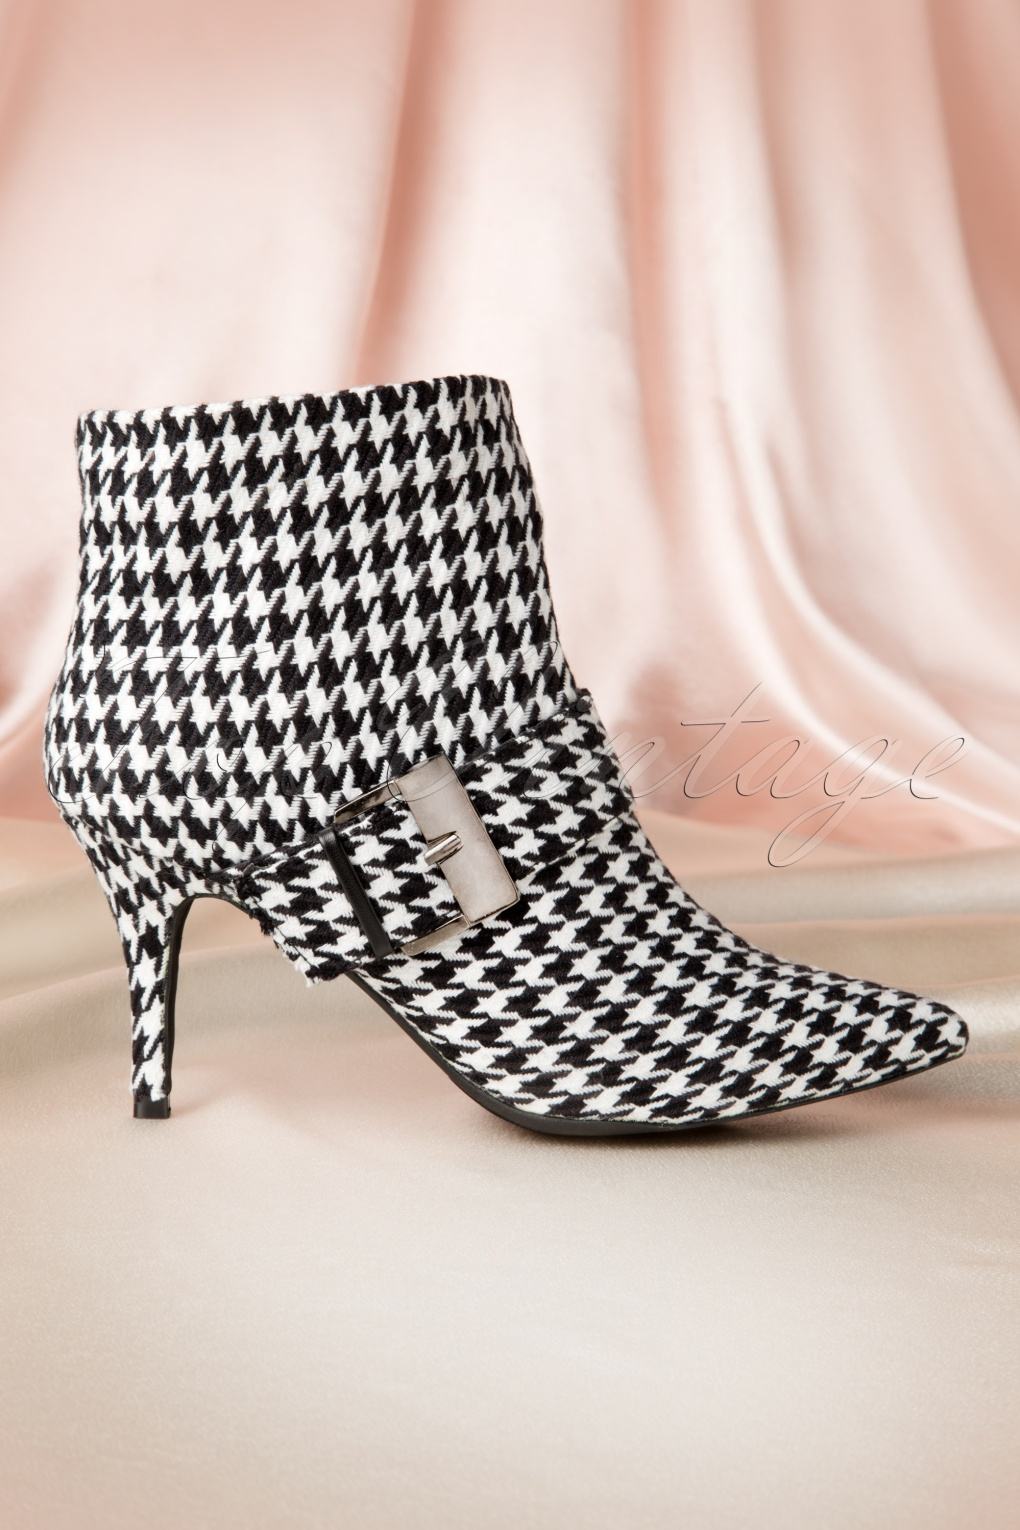 60s Classy Houndstooth Ankle Booties